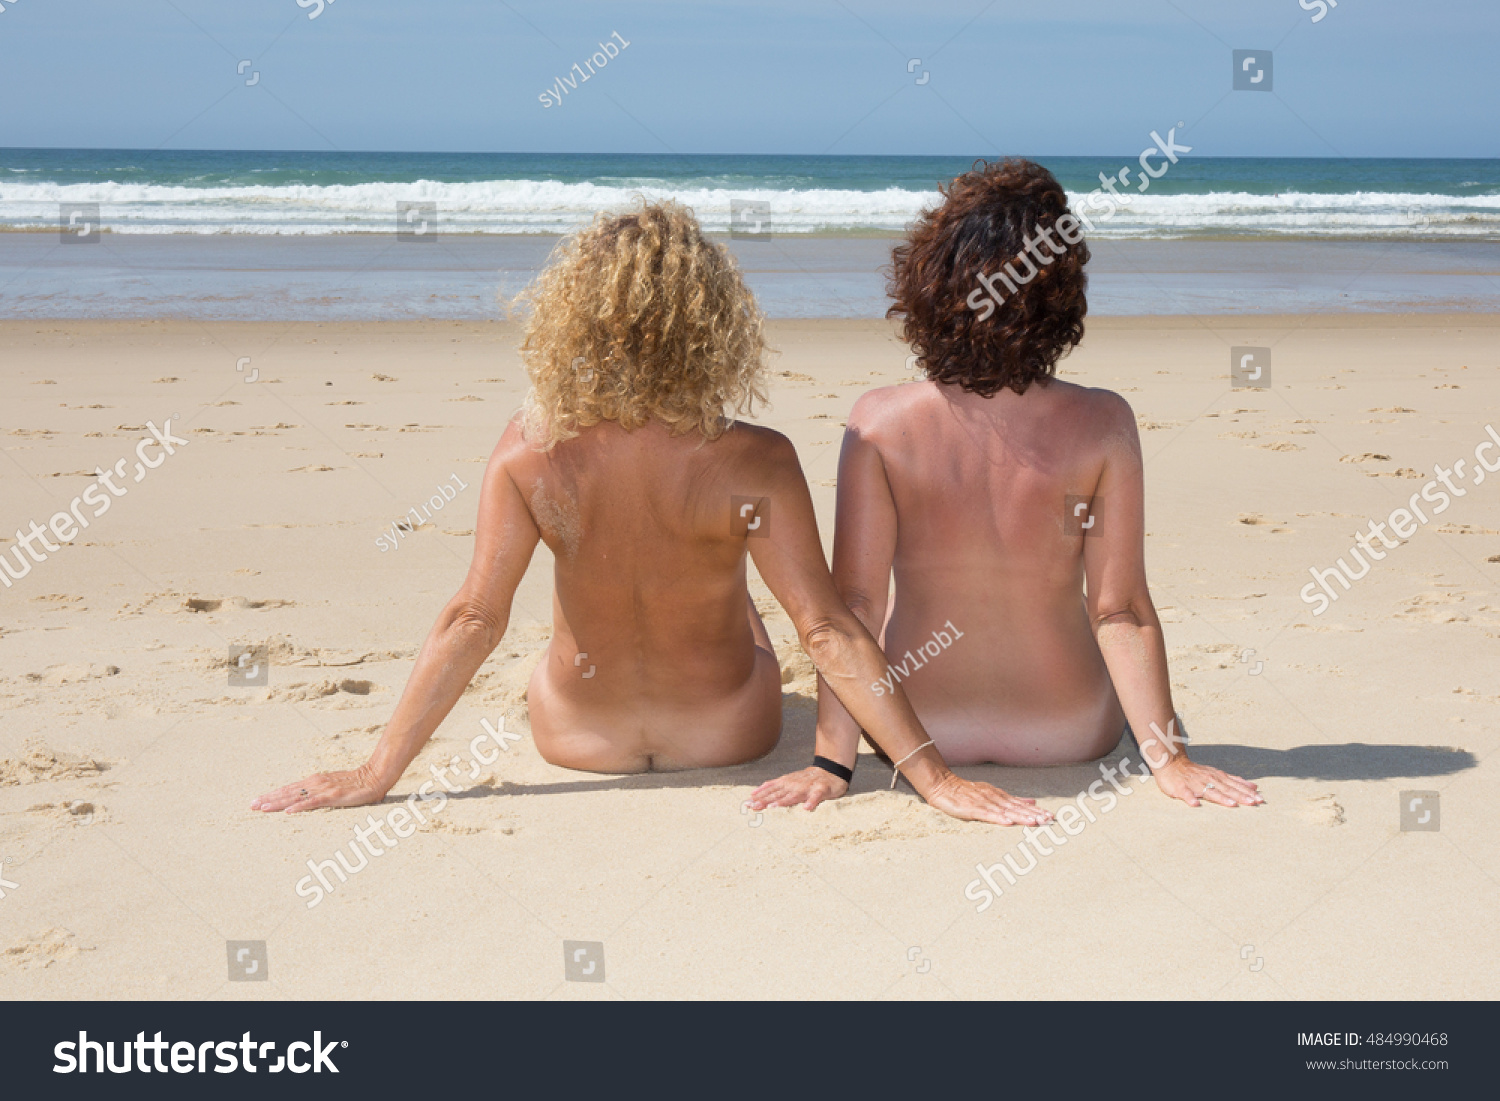 Apologise, Naked girl sitting on beach something